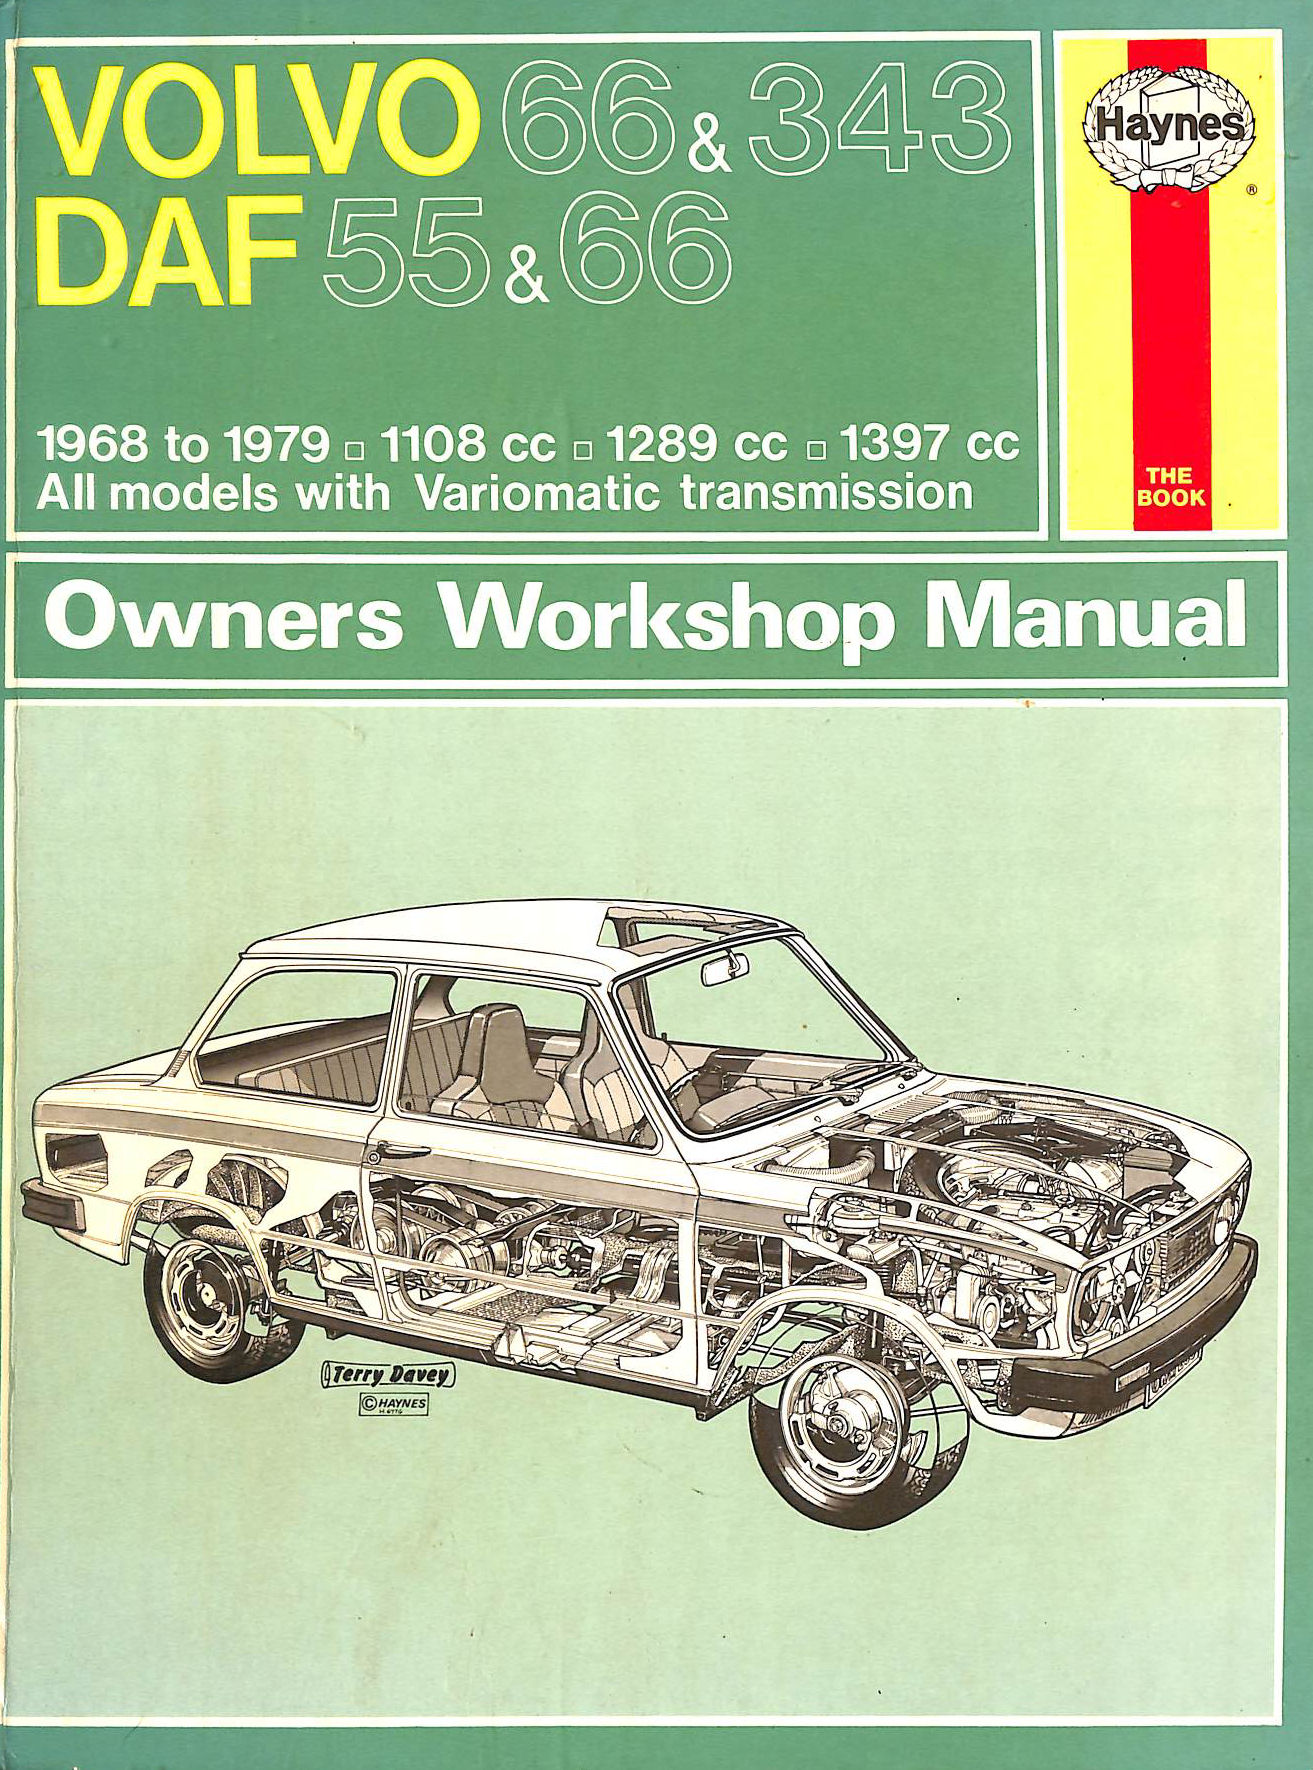 Image for Volvo 66 and 343 and Daf 55 and 66 Owner's Workshop Manual (Service & repair manuals)